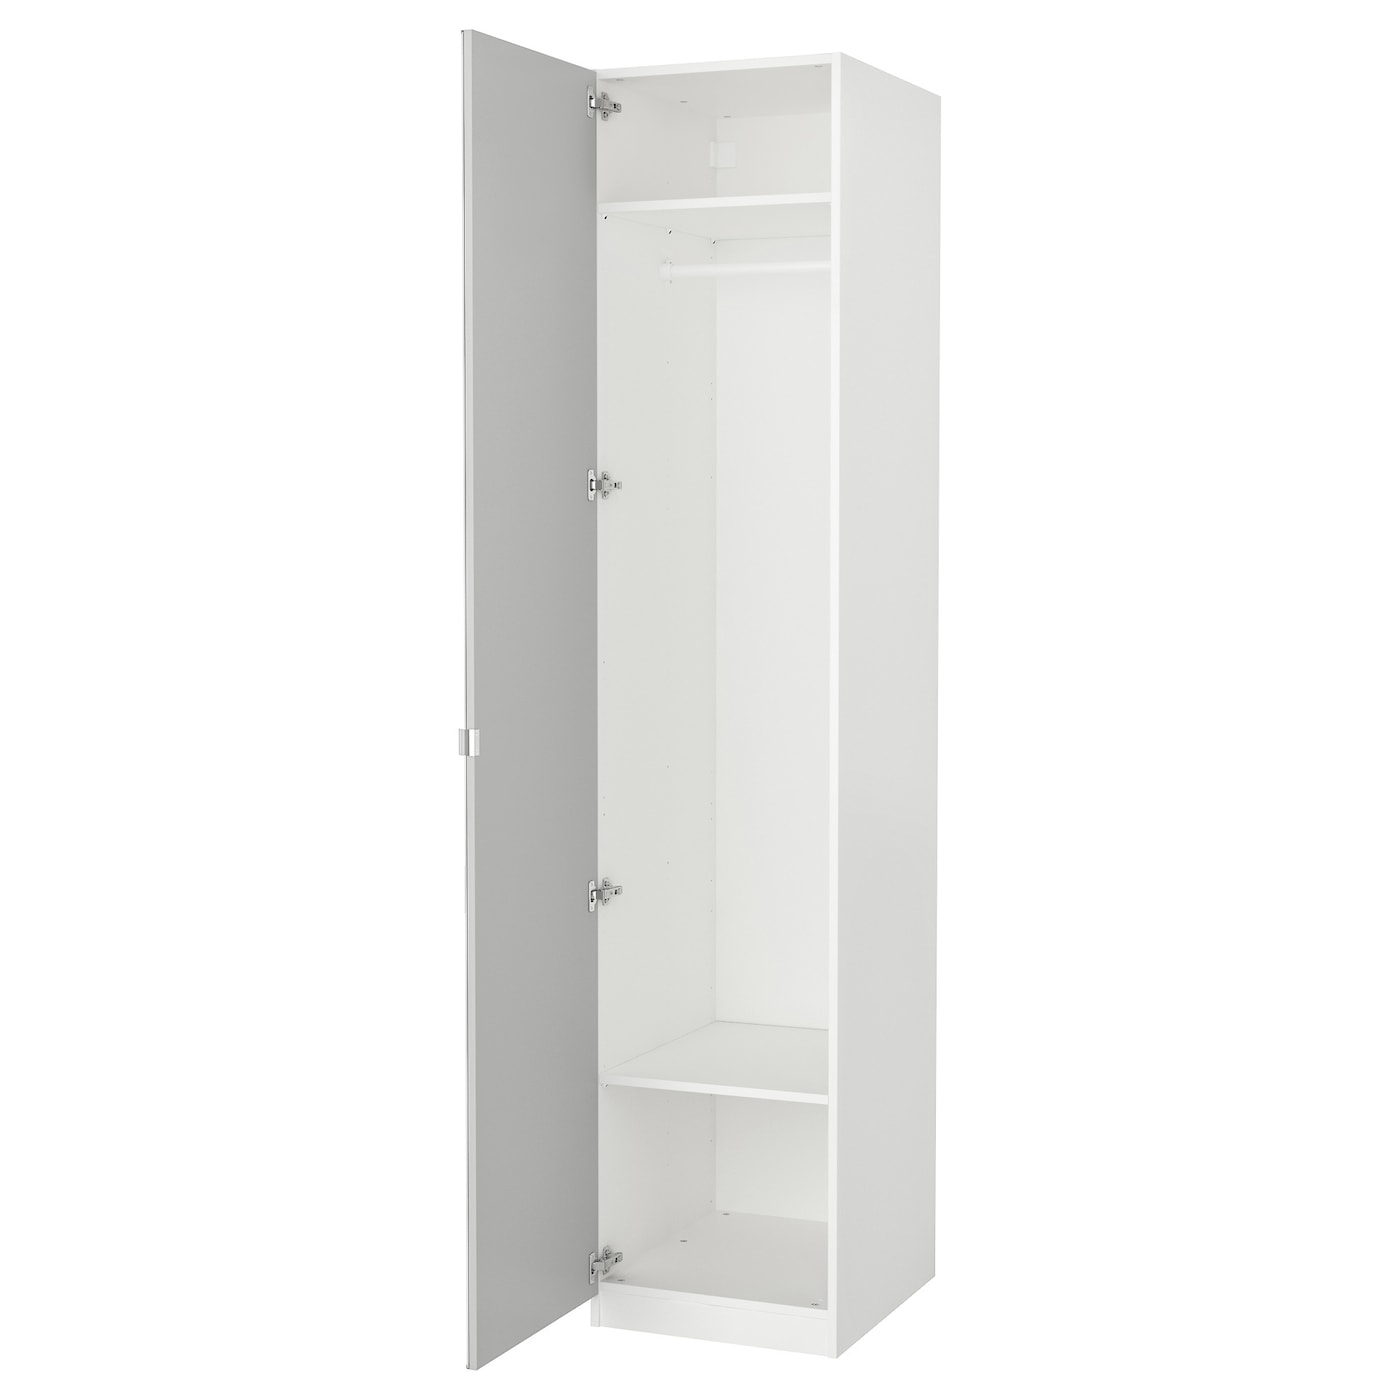 pax armoire penderie blanc vikedal miroir 50 x 60 x 236 cm ikea. Black Bedroom Furniture Sets. Home Design Ideas